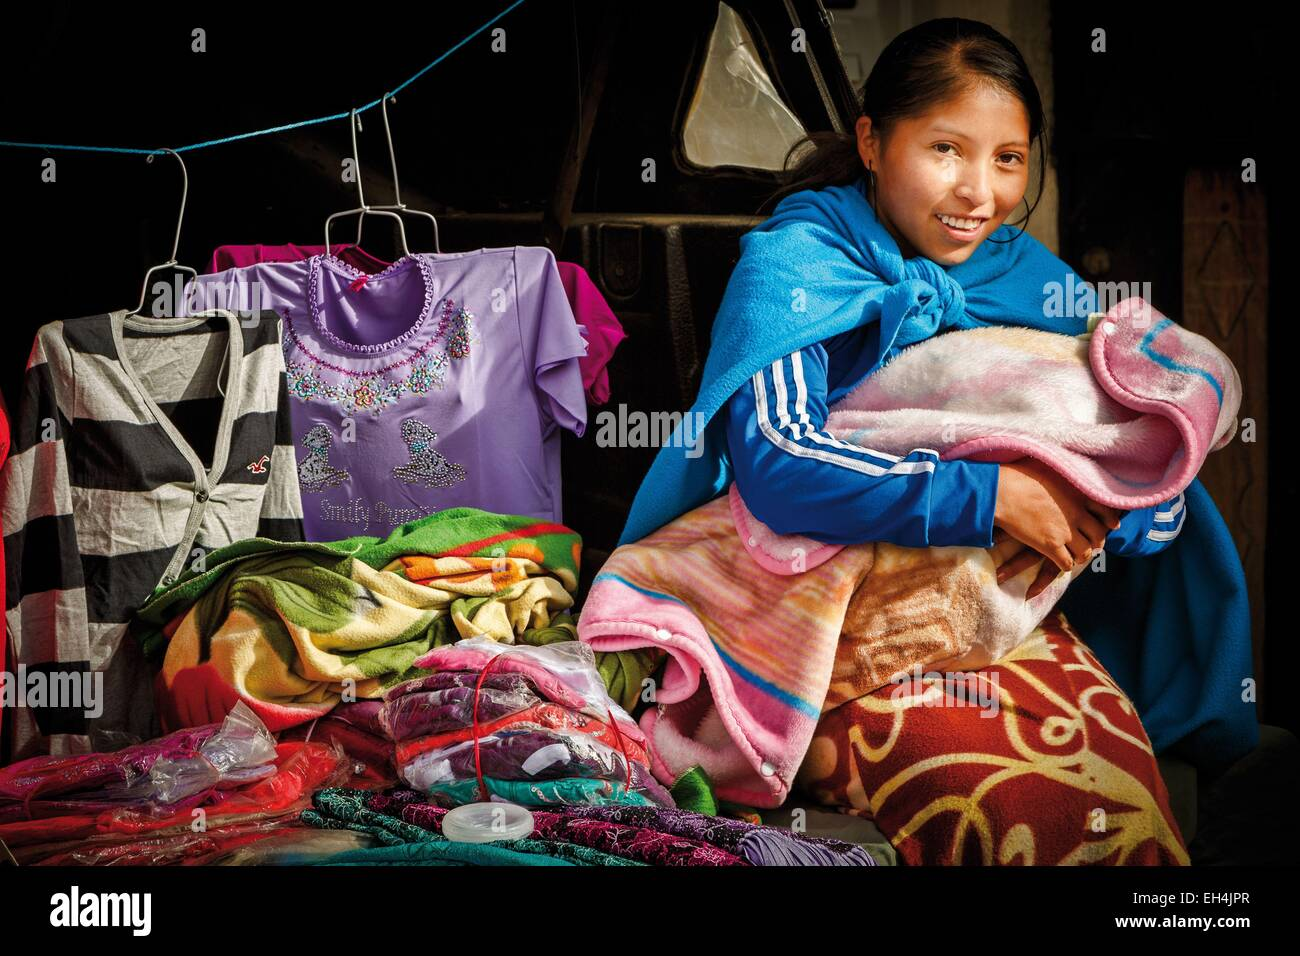 Ecuador, Cotopaxi, Zumbahua, day of the village of Zumbahua market, portrait of an Ecuadorian peasant suckling her - Stock Image